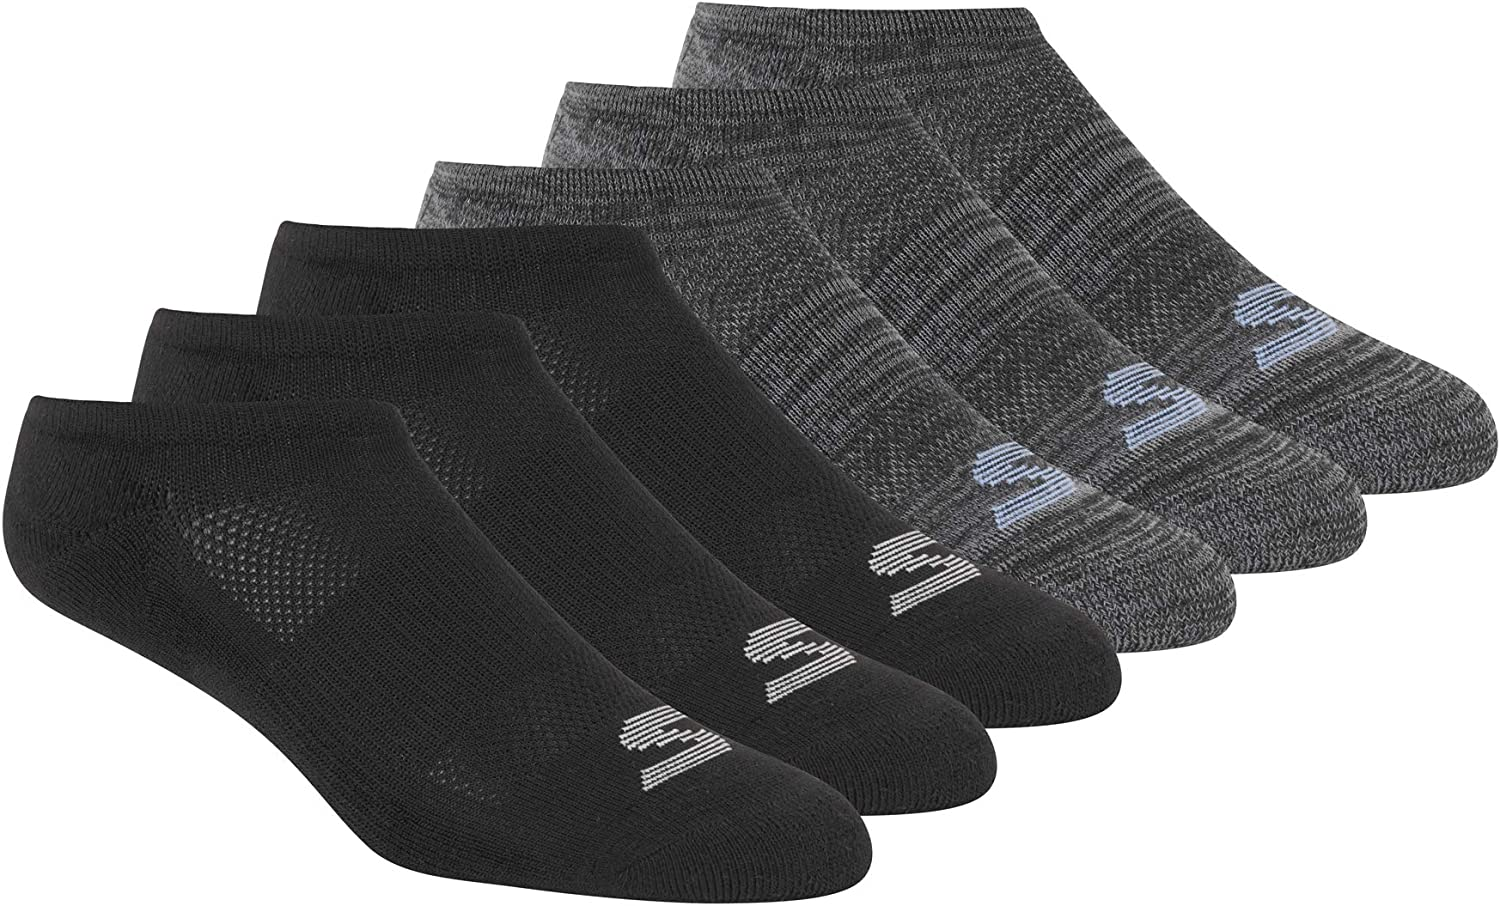 Fresno Mall Skechers Women's 6 Pack Show Socks sold out No